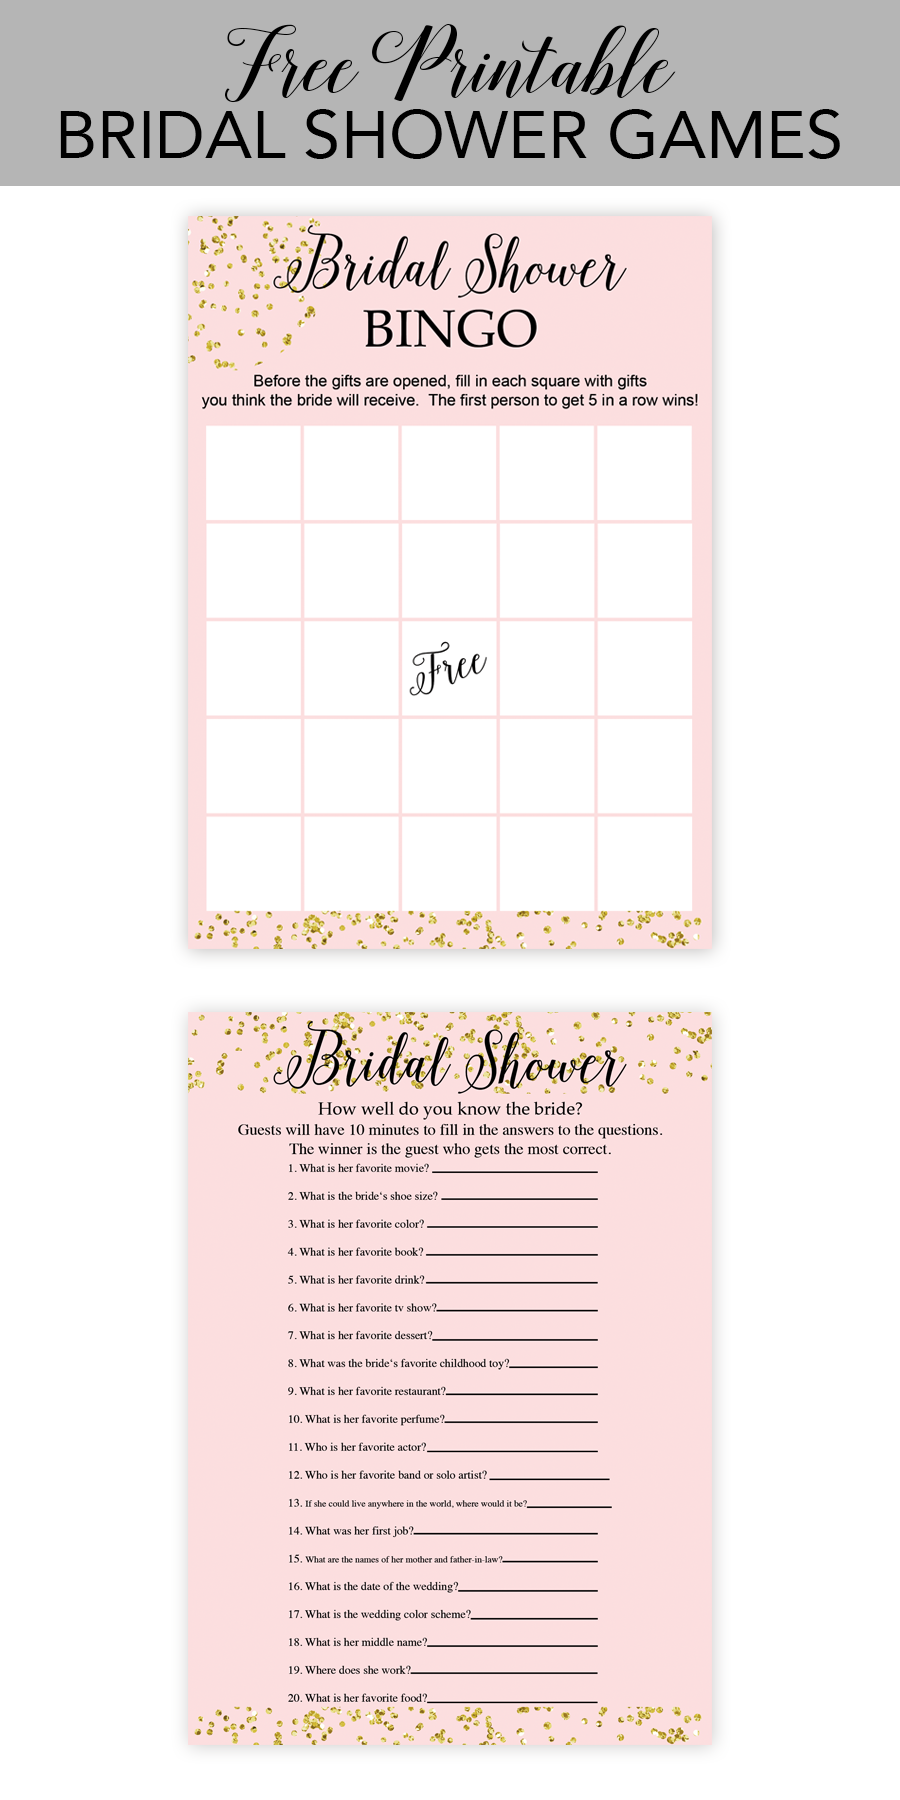 graphic regarding Printable Bridal Shower Games named Absolutely free Printable Bridal Shower Game titles - Chicfetti